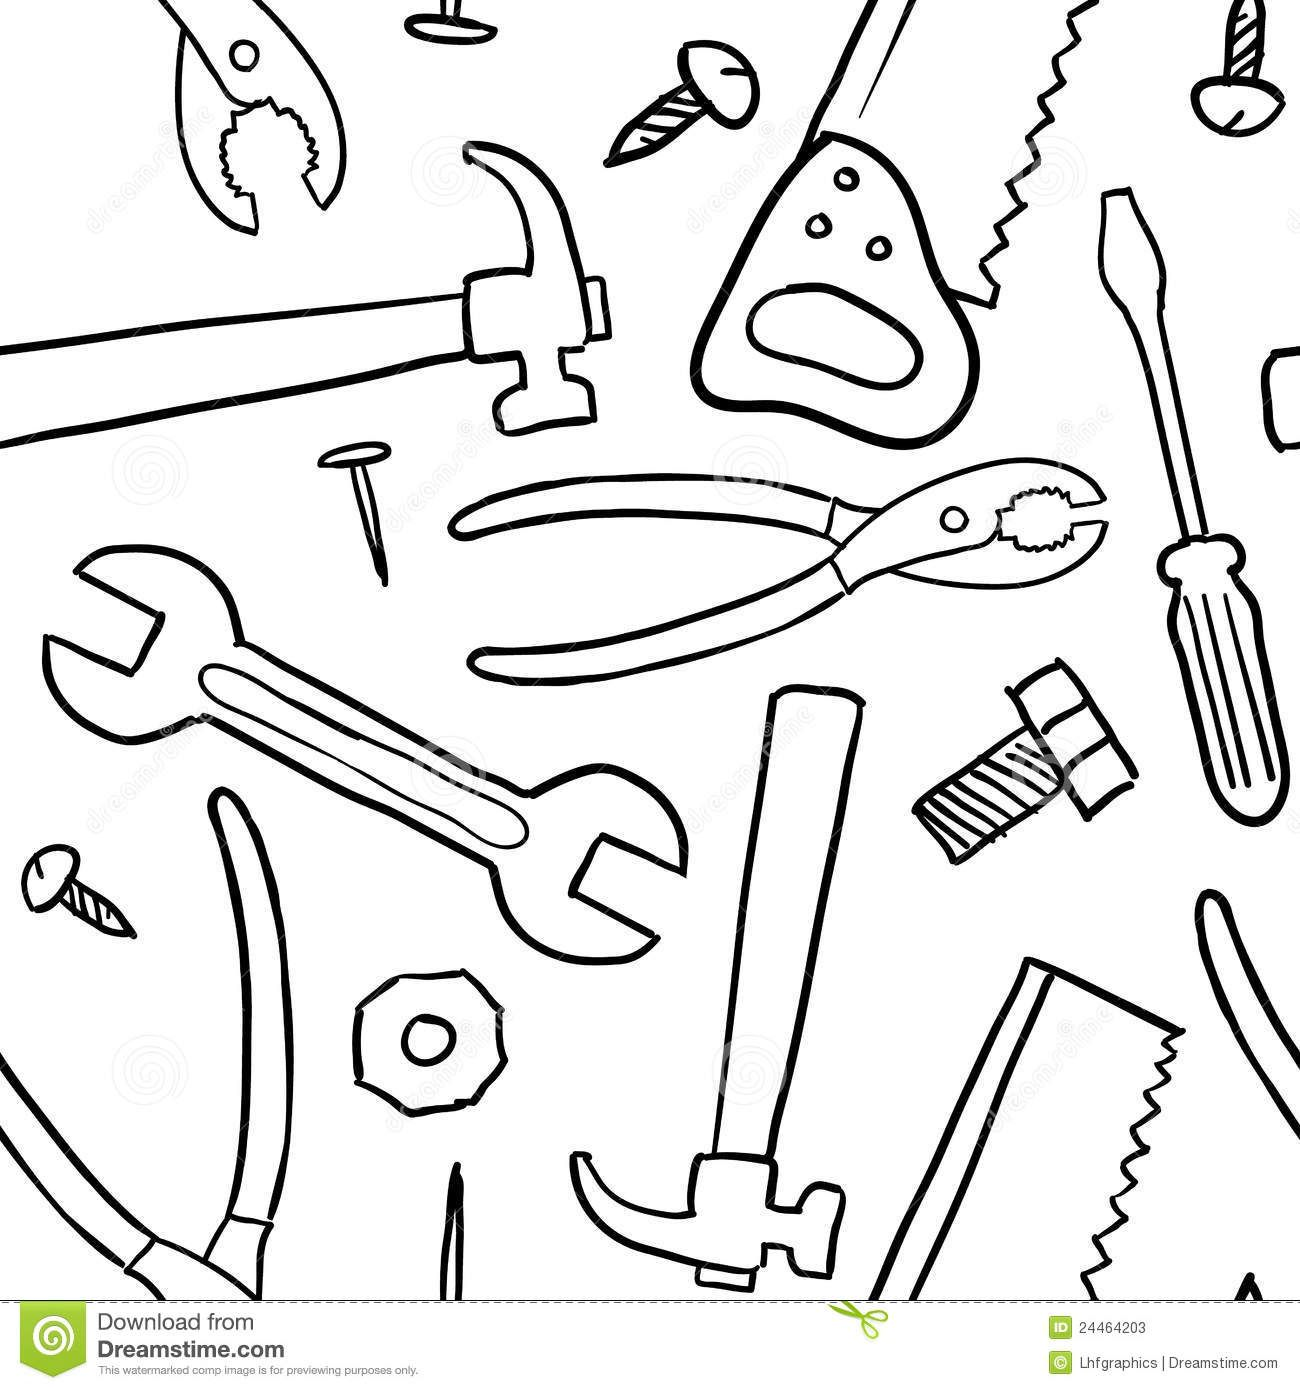 Online coloring tools - Seamless Tools Vector Background